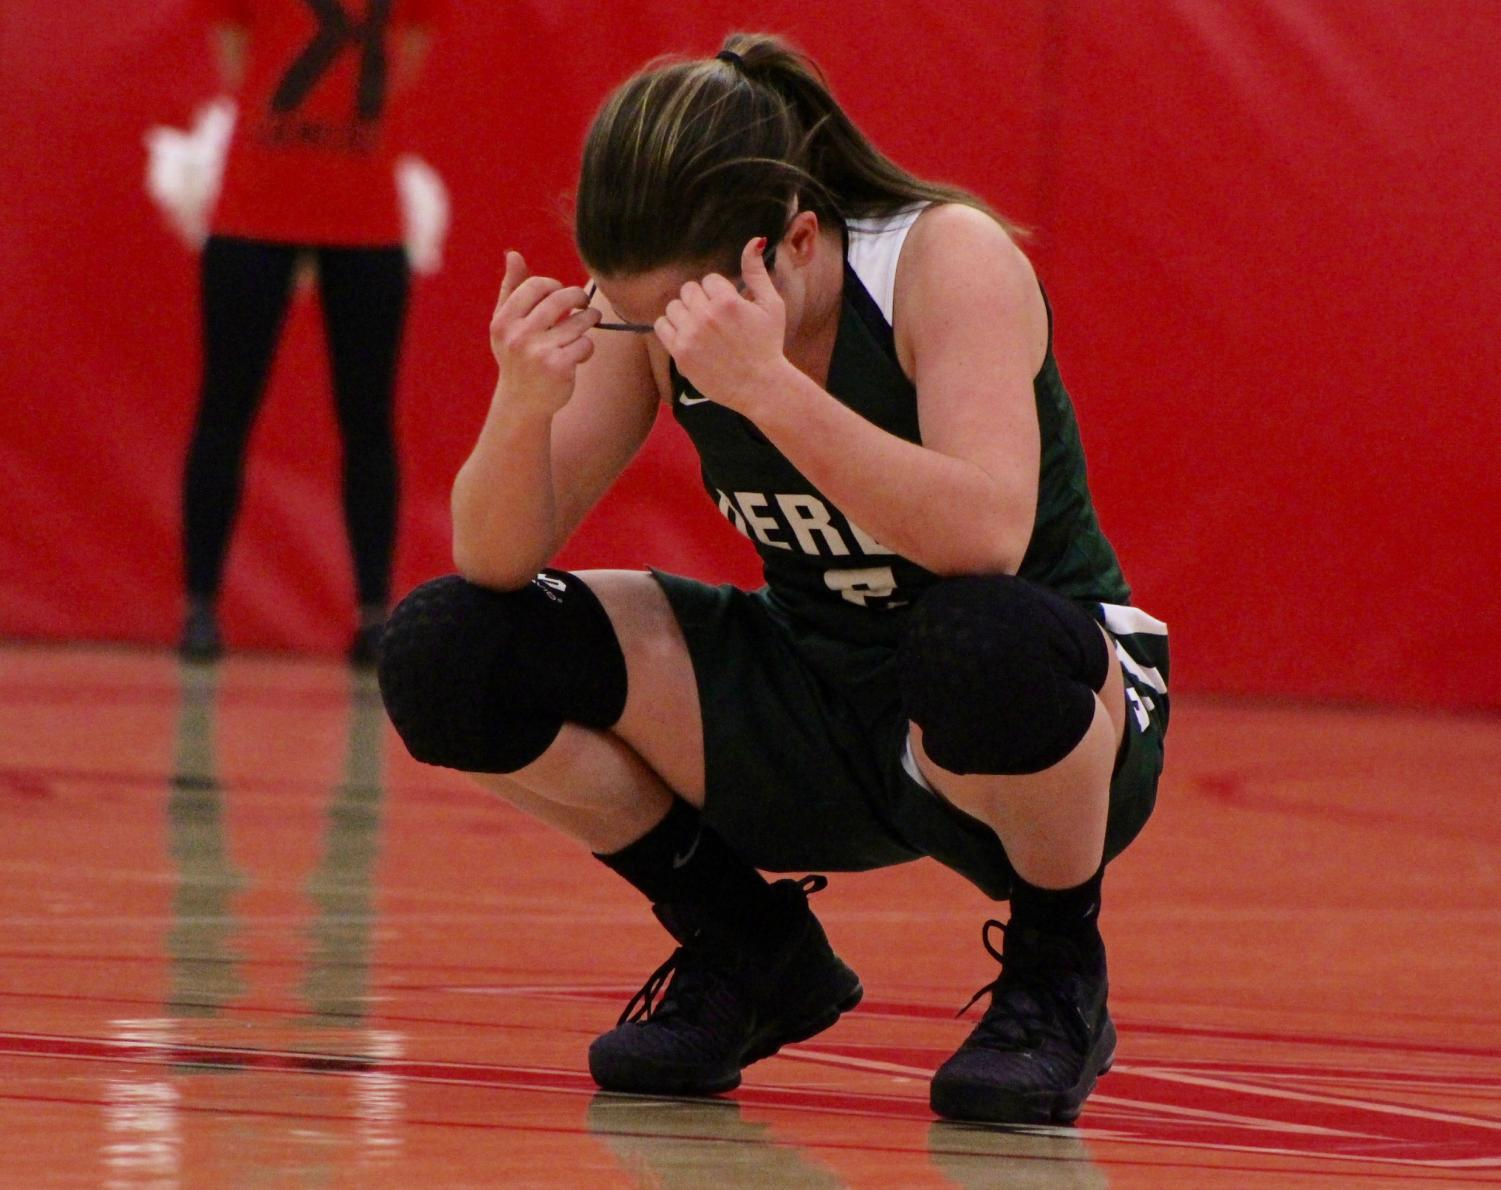 Junior+Madi+Young+kneels+down+towards+the+end+of+the+game+to+regain+her+focus.